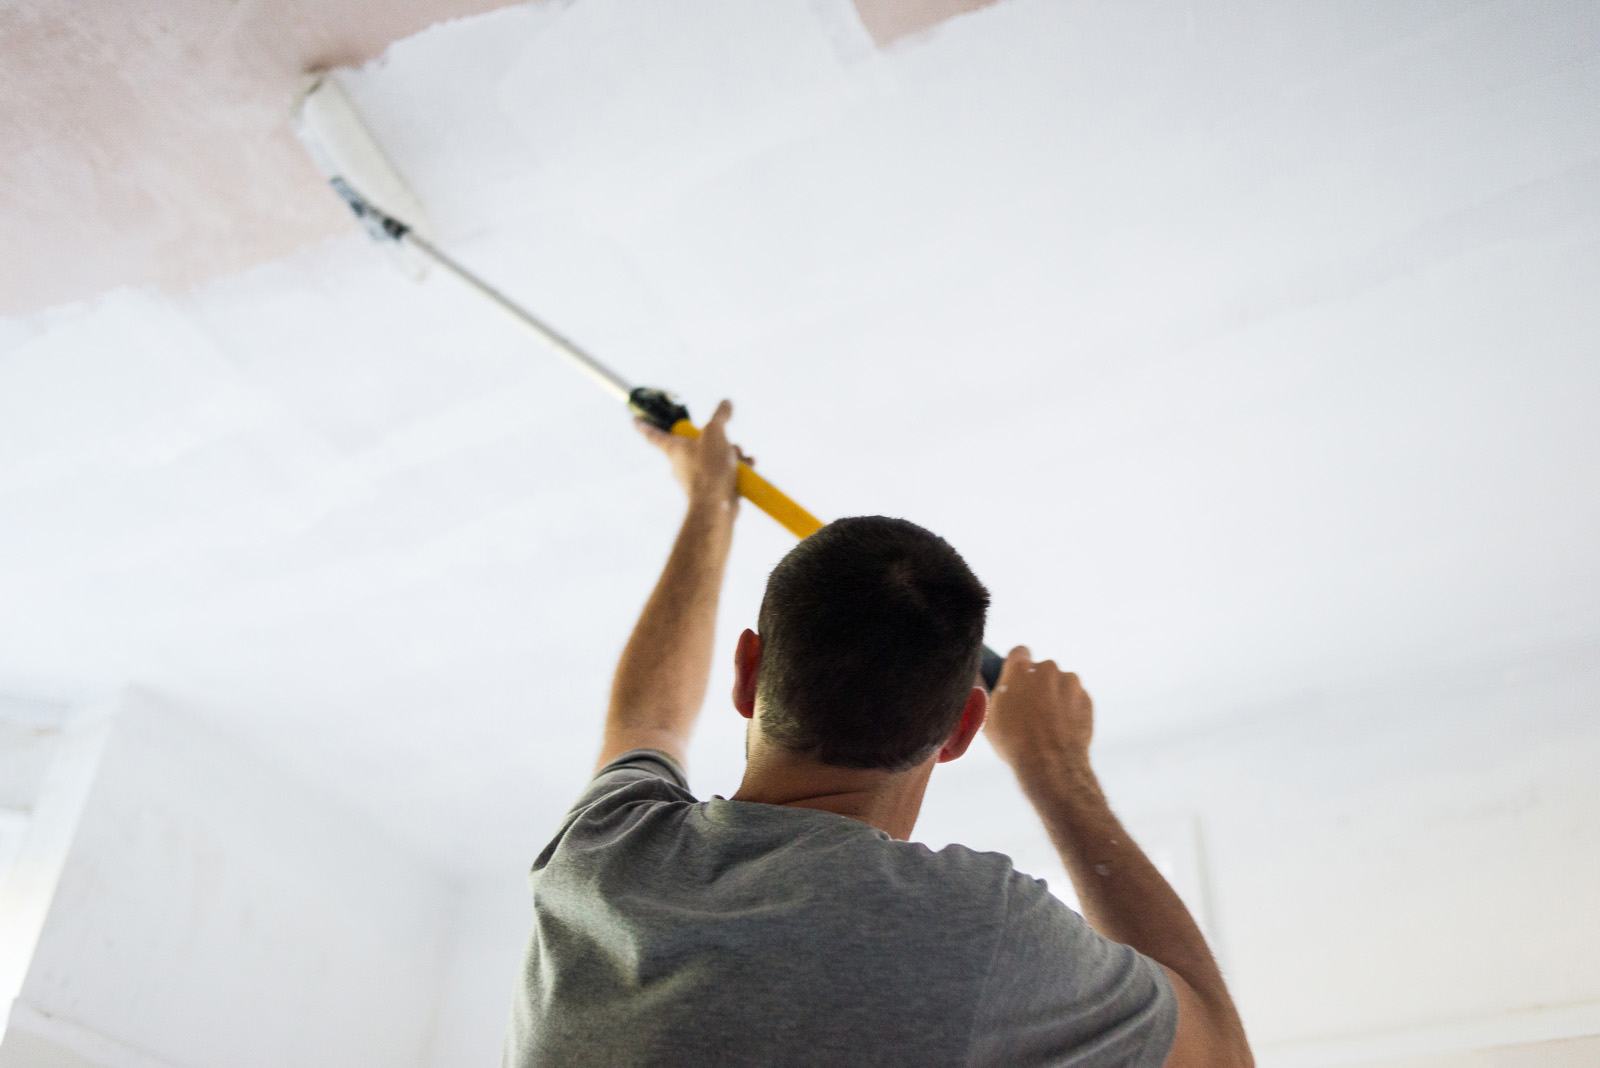 Painting And Decorating Jobs Hampshire